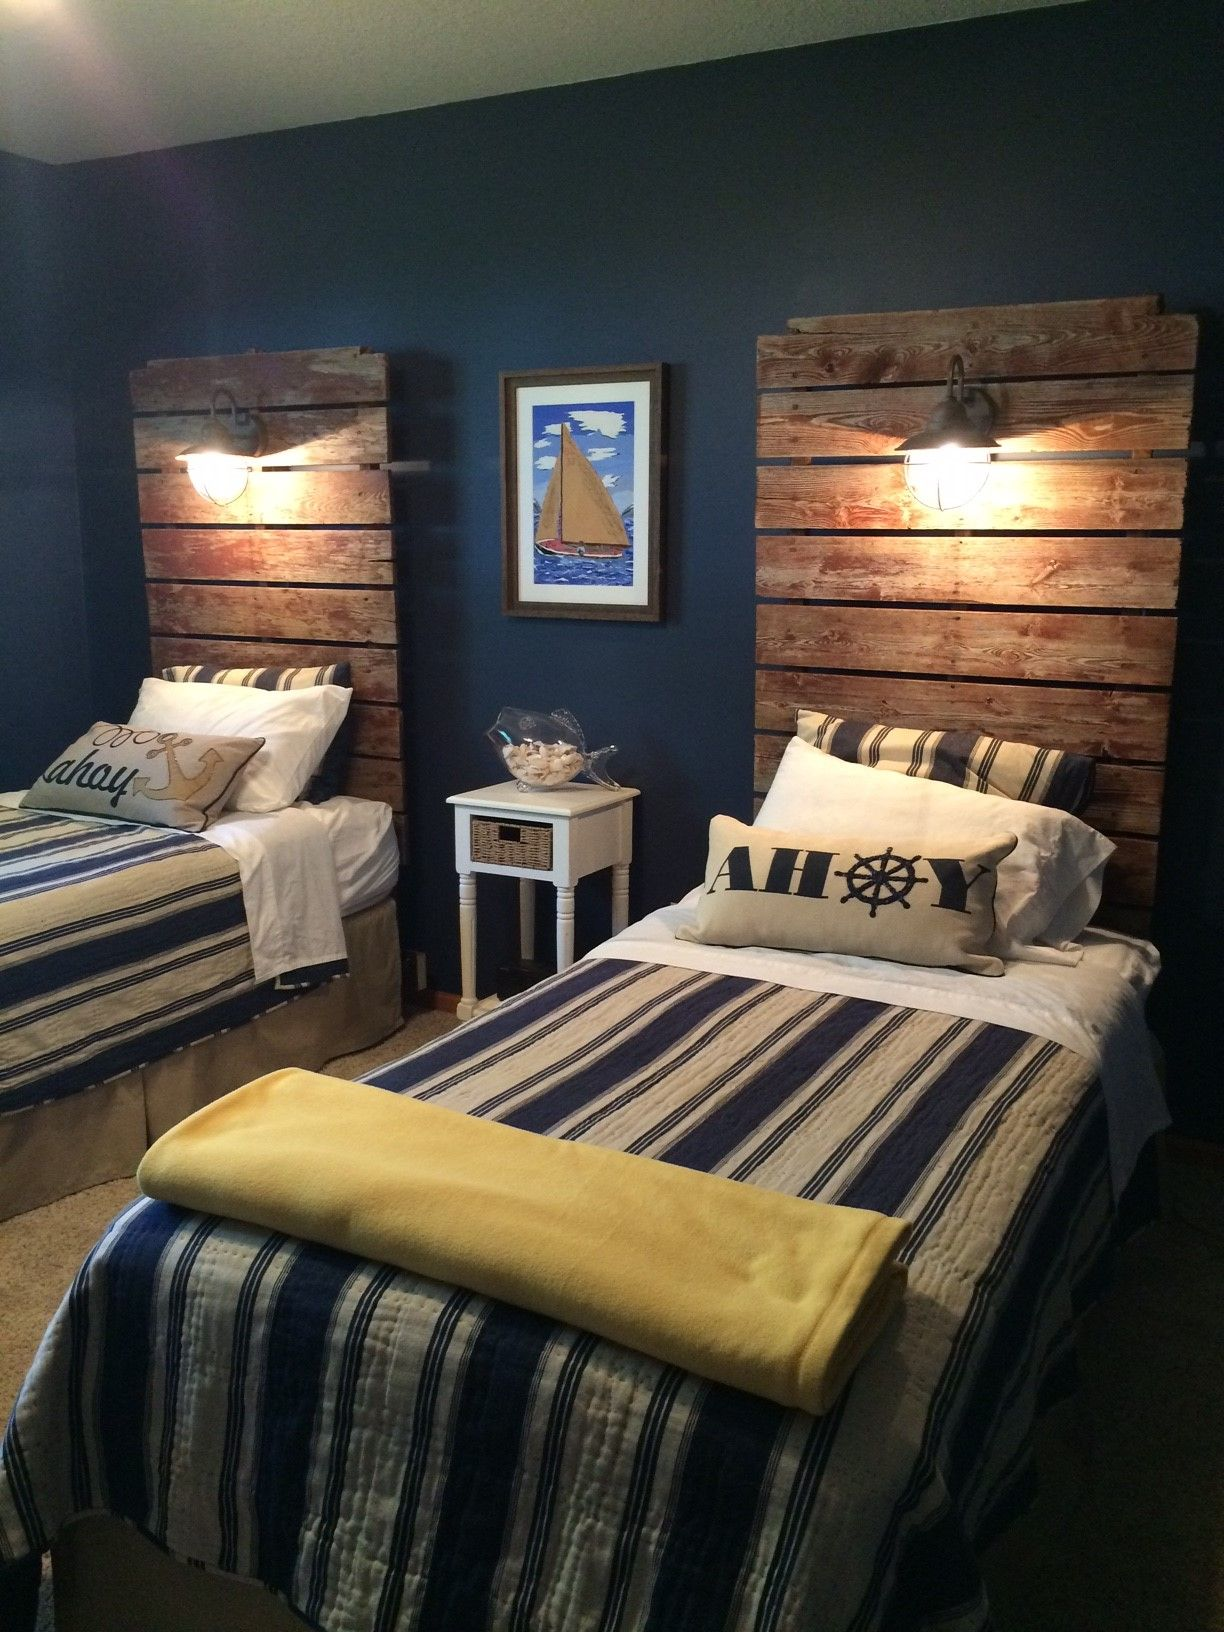 headboards made from our old dock sections with wired lights so cute reclaimed